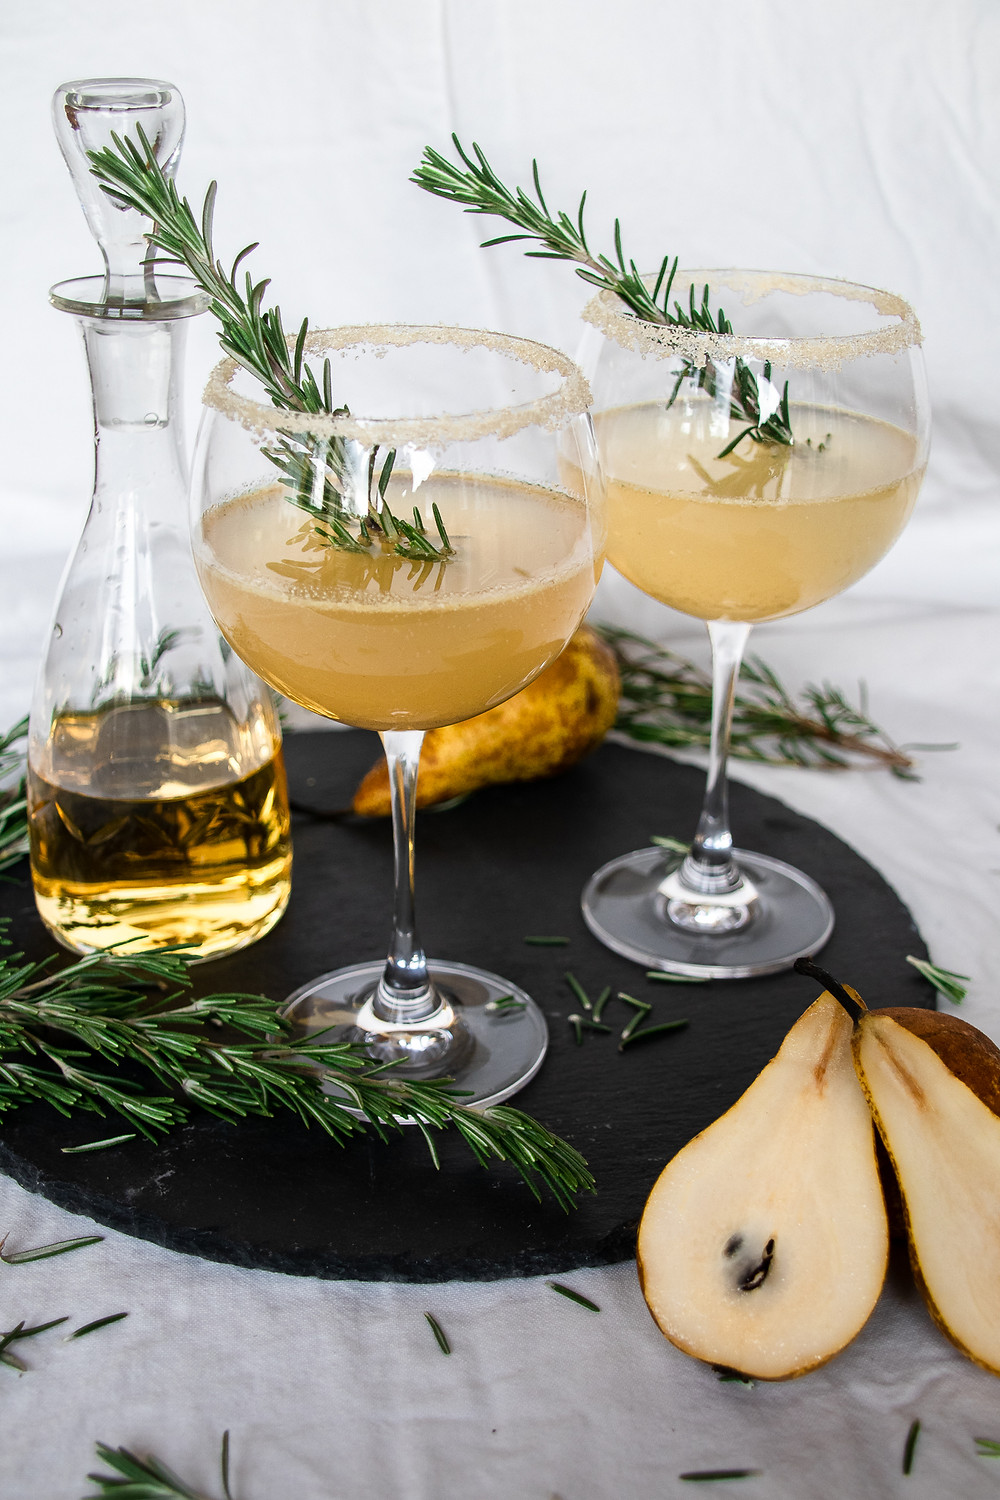 Winter-Aperitif-Weihnachten-Silvester-Birnen-Cocktail